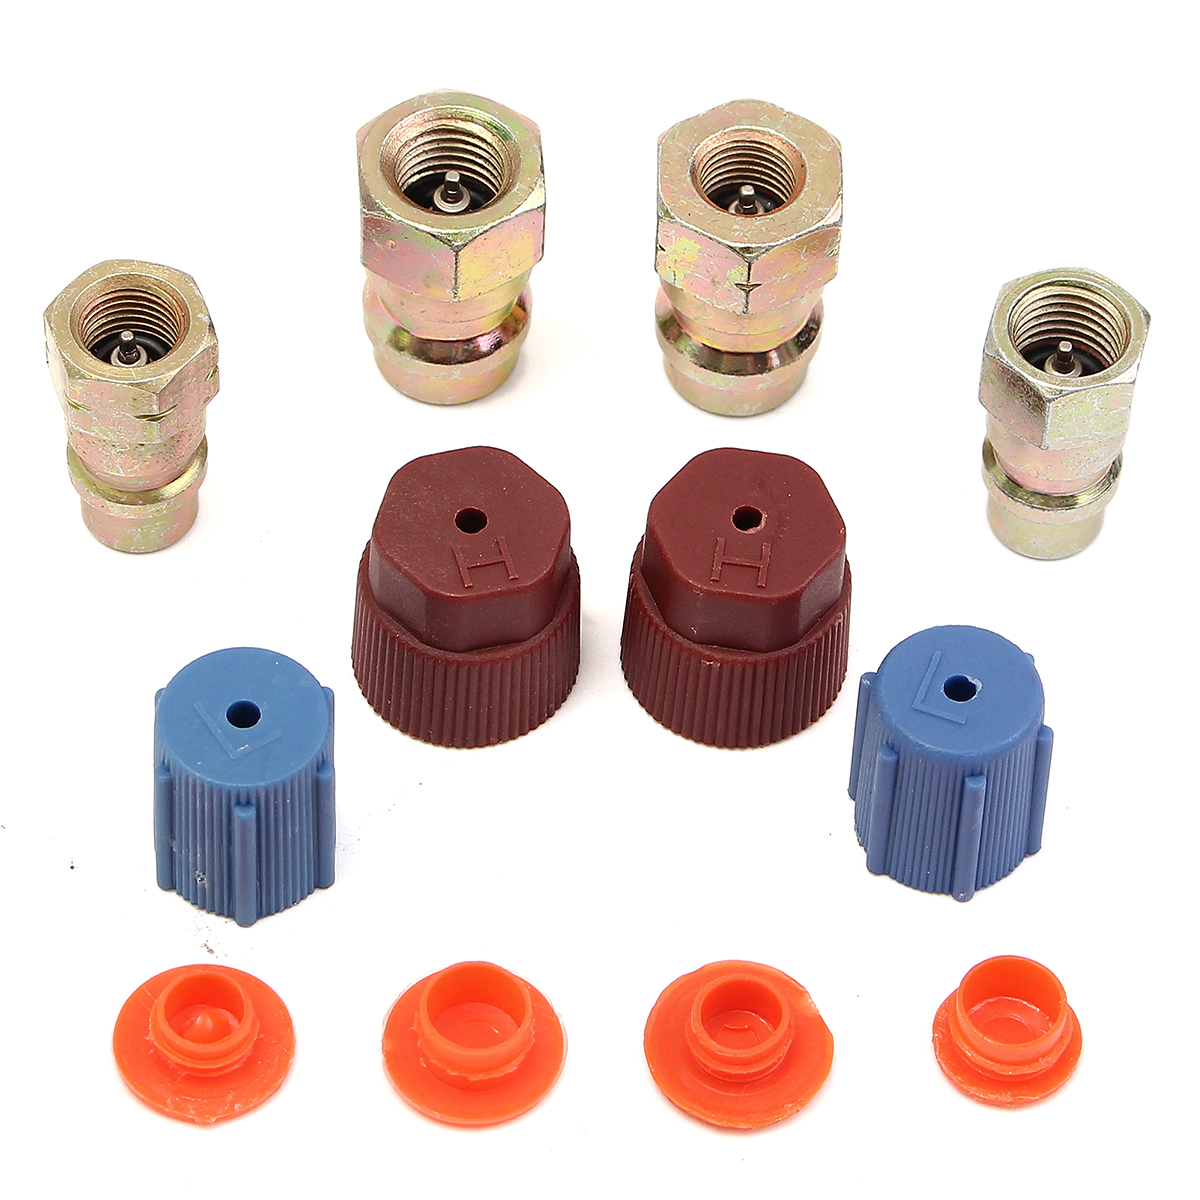 30 pcs A//C Retrofits Adapters R12 to R134a /'Quick Disconnect/' 12 kinds fittings